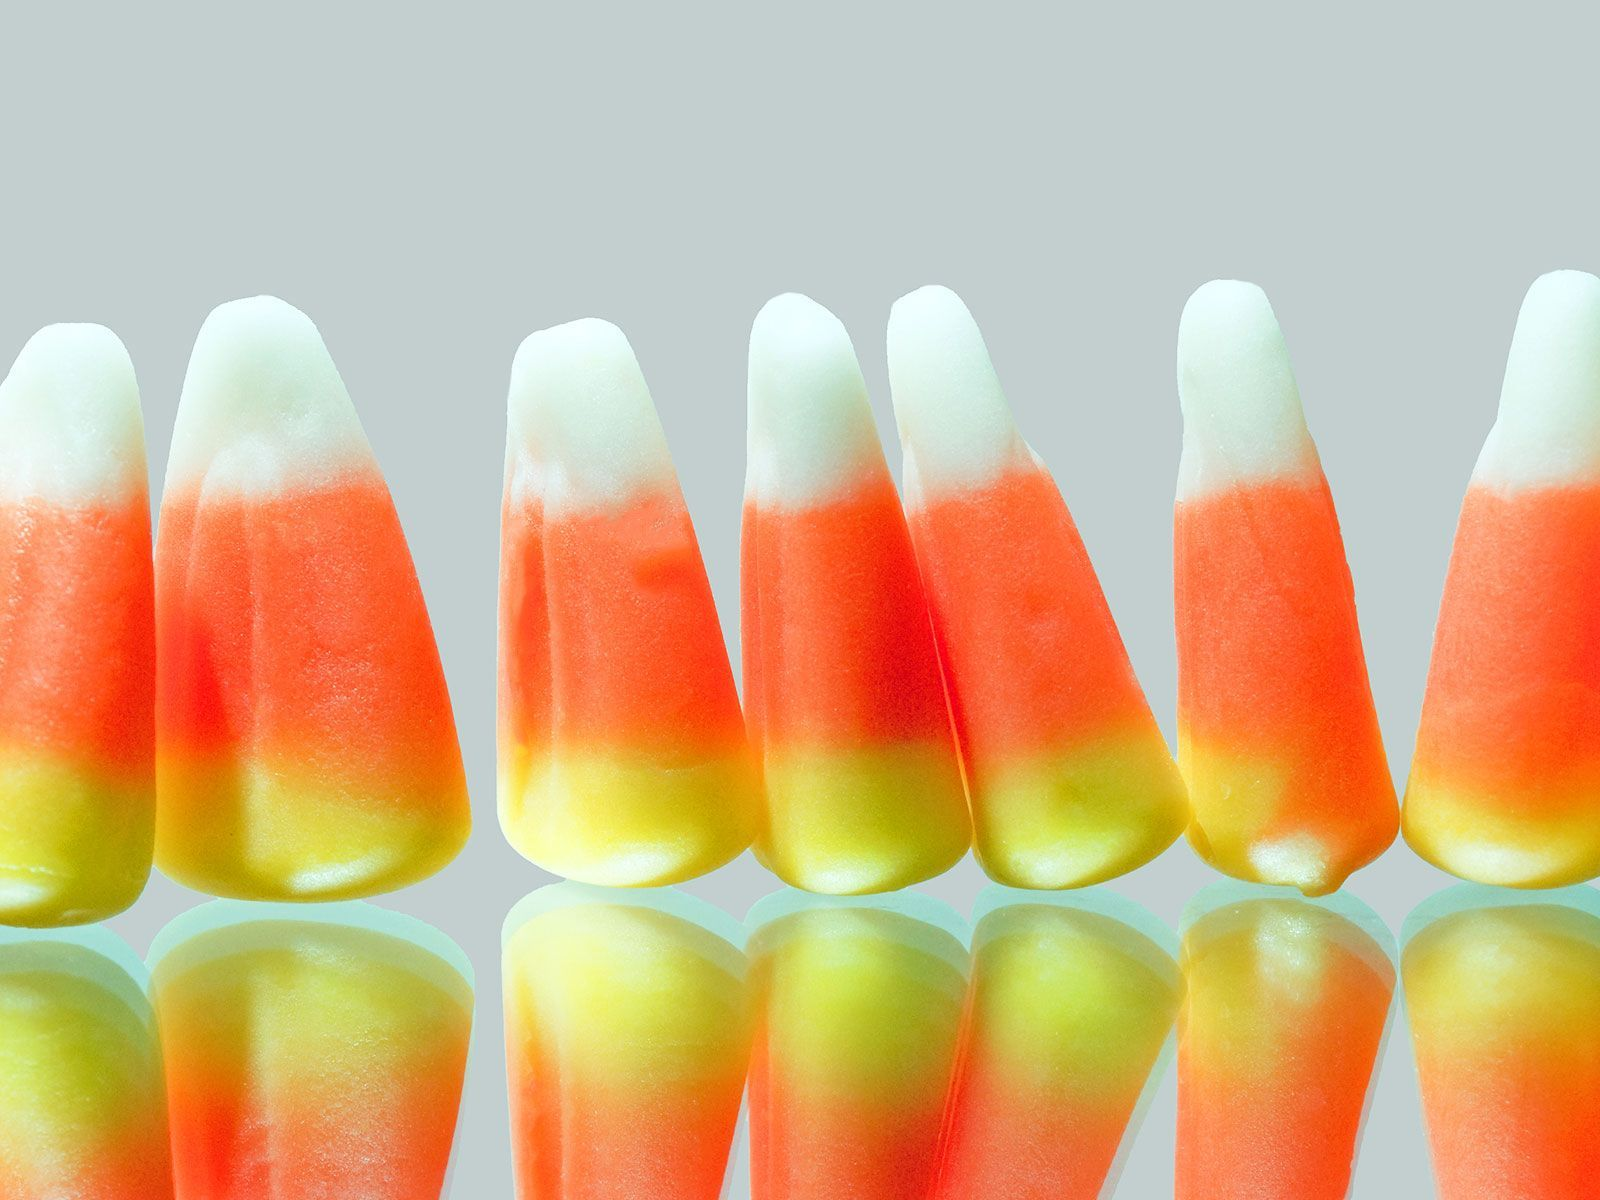 1600x1200 This Candy Corn Domino Rally Finally Puts the Controversial ...